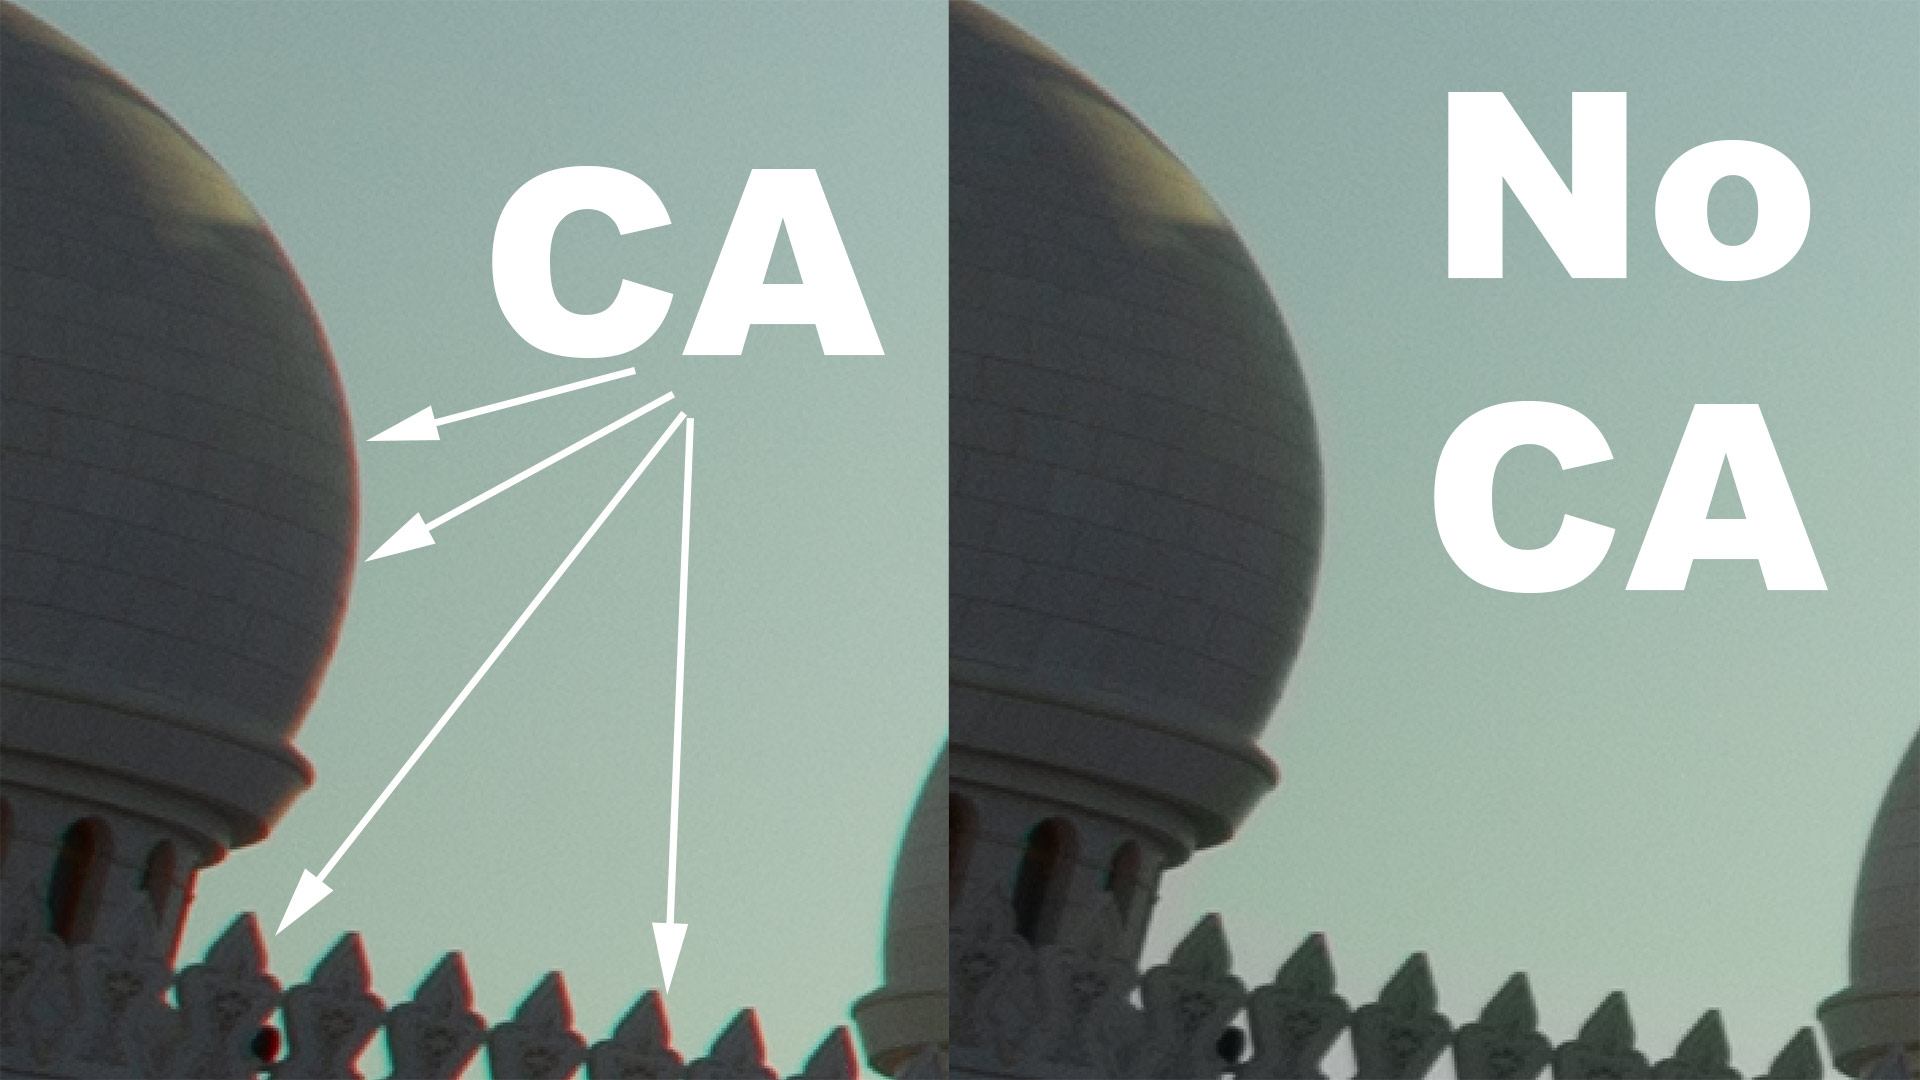 The ULTIMATE Way to Remove Chromatic Aberration (CA) in Photoshop